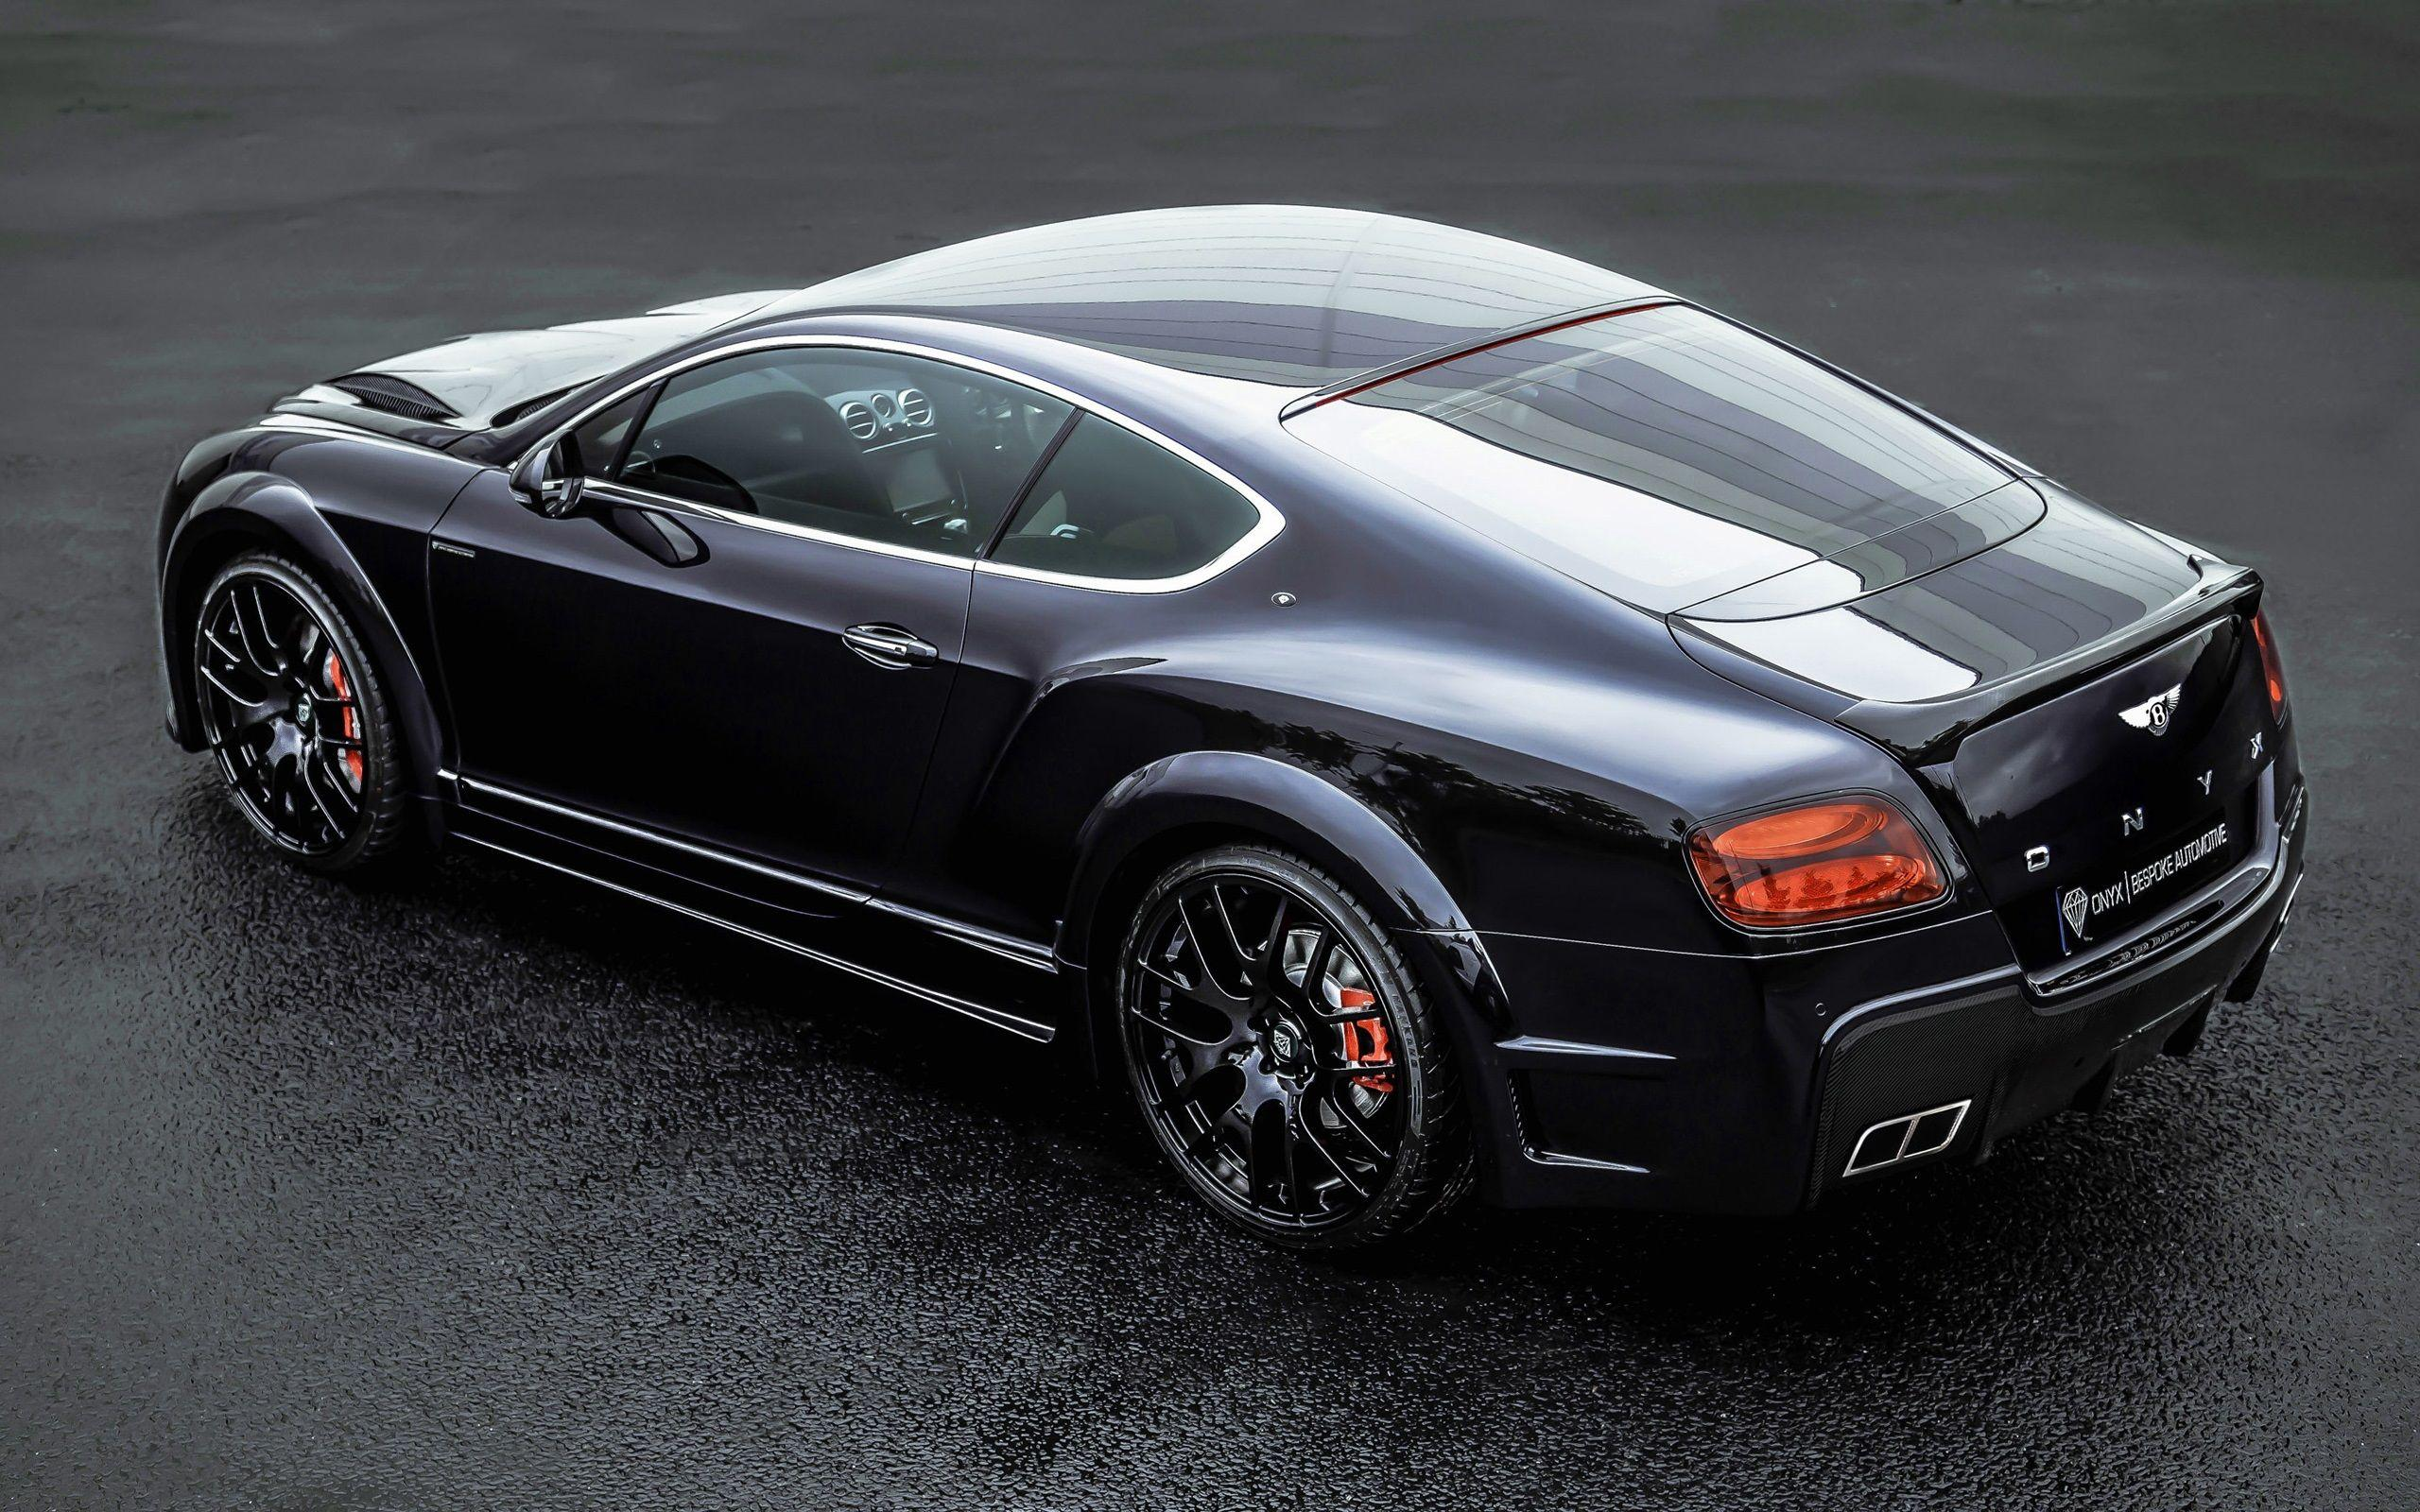 Bentley Continental GT ONYX black car back view wallpaper | cars ...